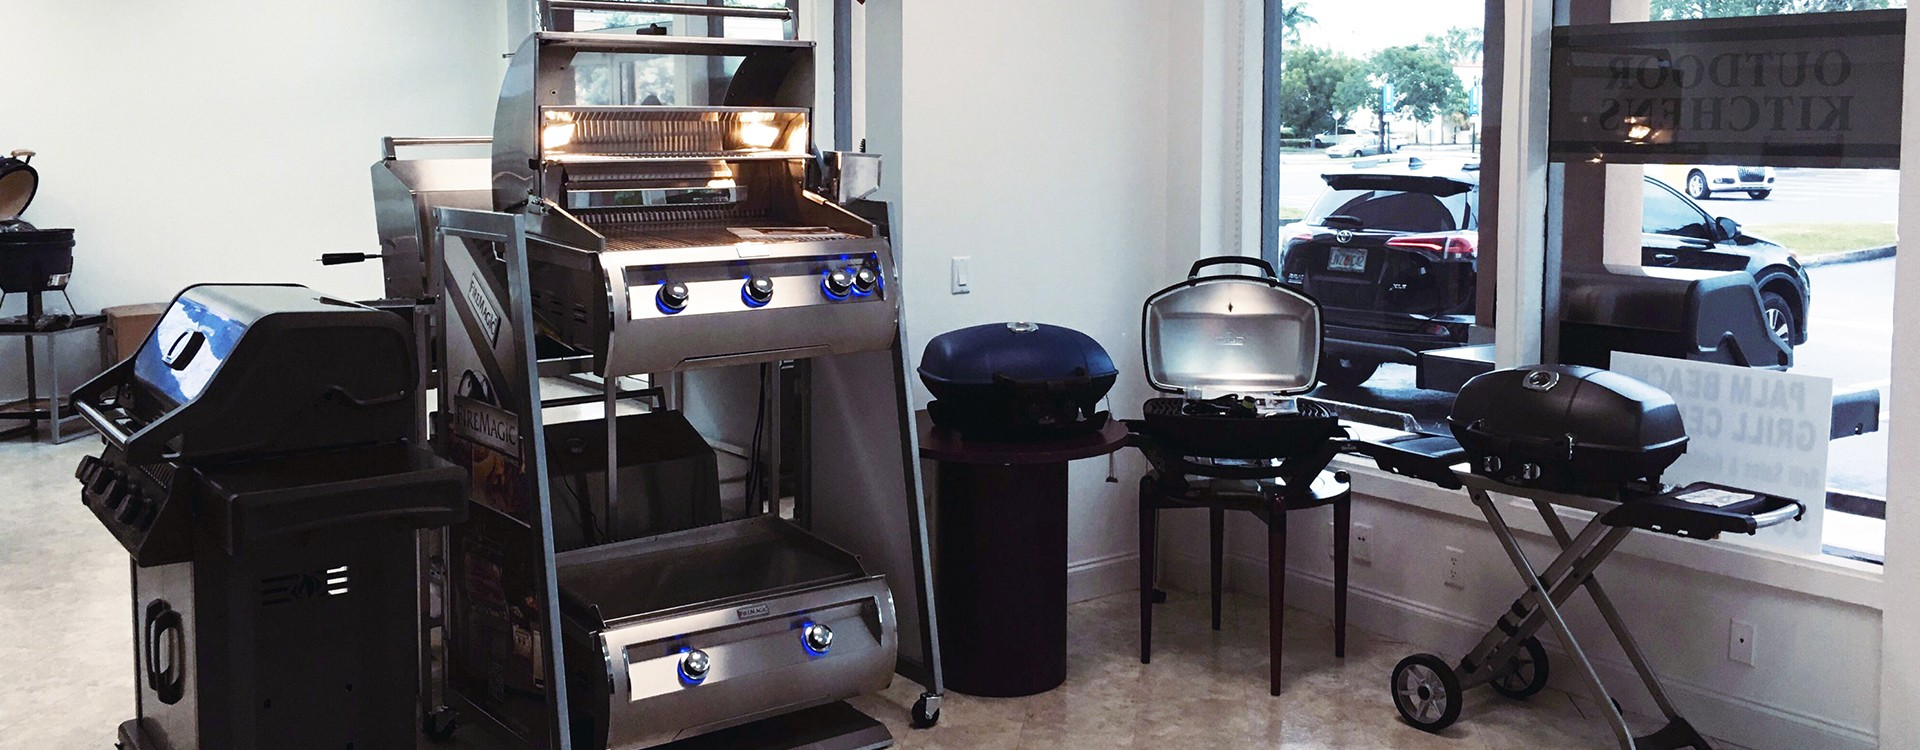 Palm Beach Grill Center Werst Delray Beach location store images featuring BBQ Grills, Outdoor Kitchens and Gas Fire Products 2